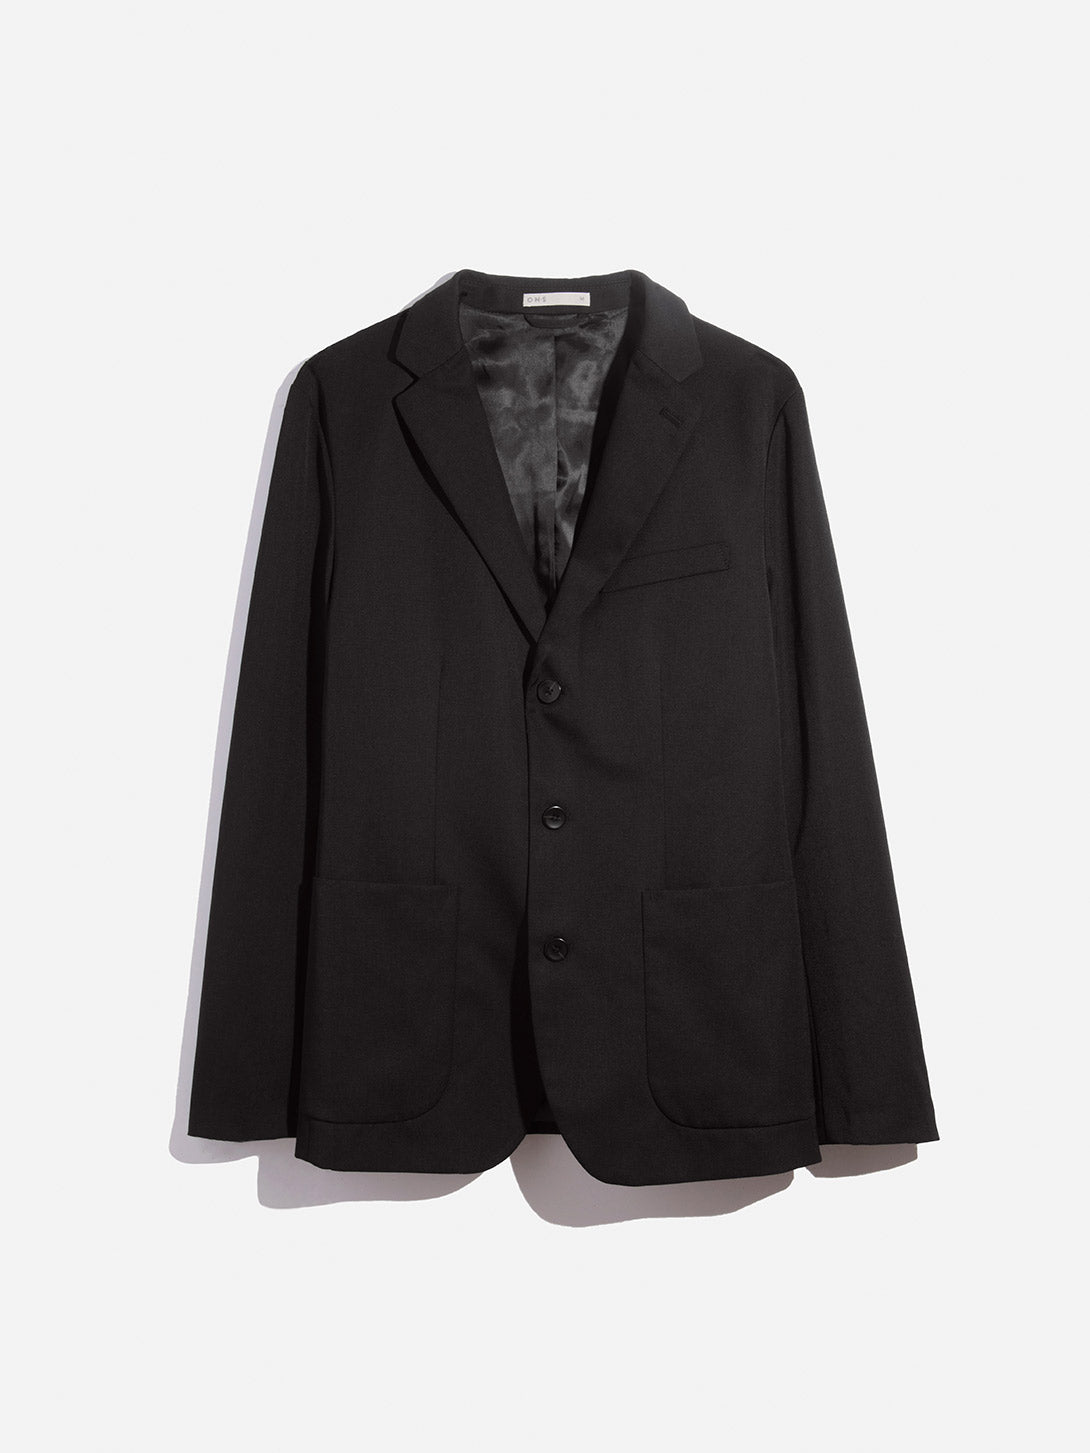 JET BLACK blazer for men miles blazer ons clothing